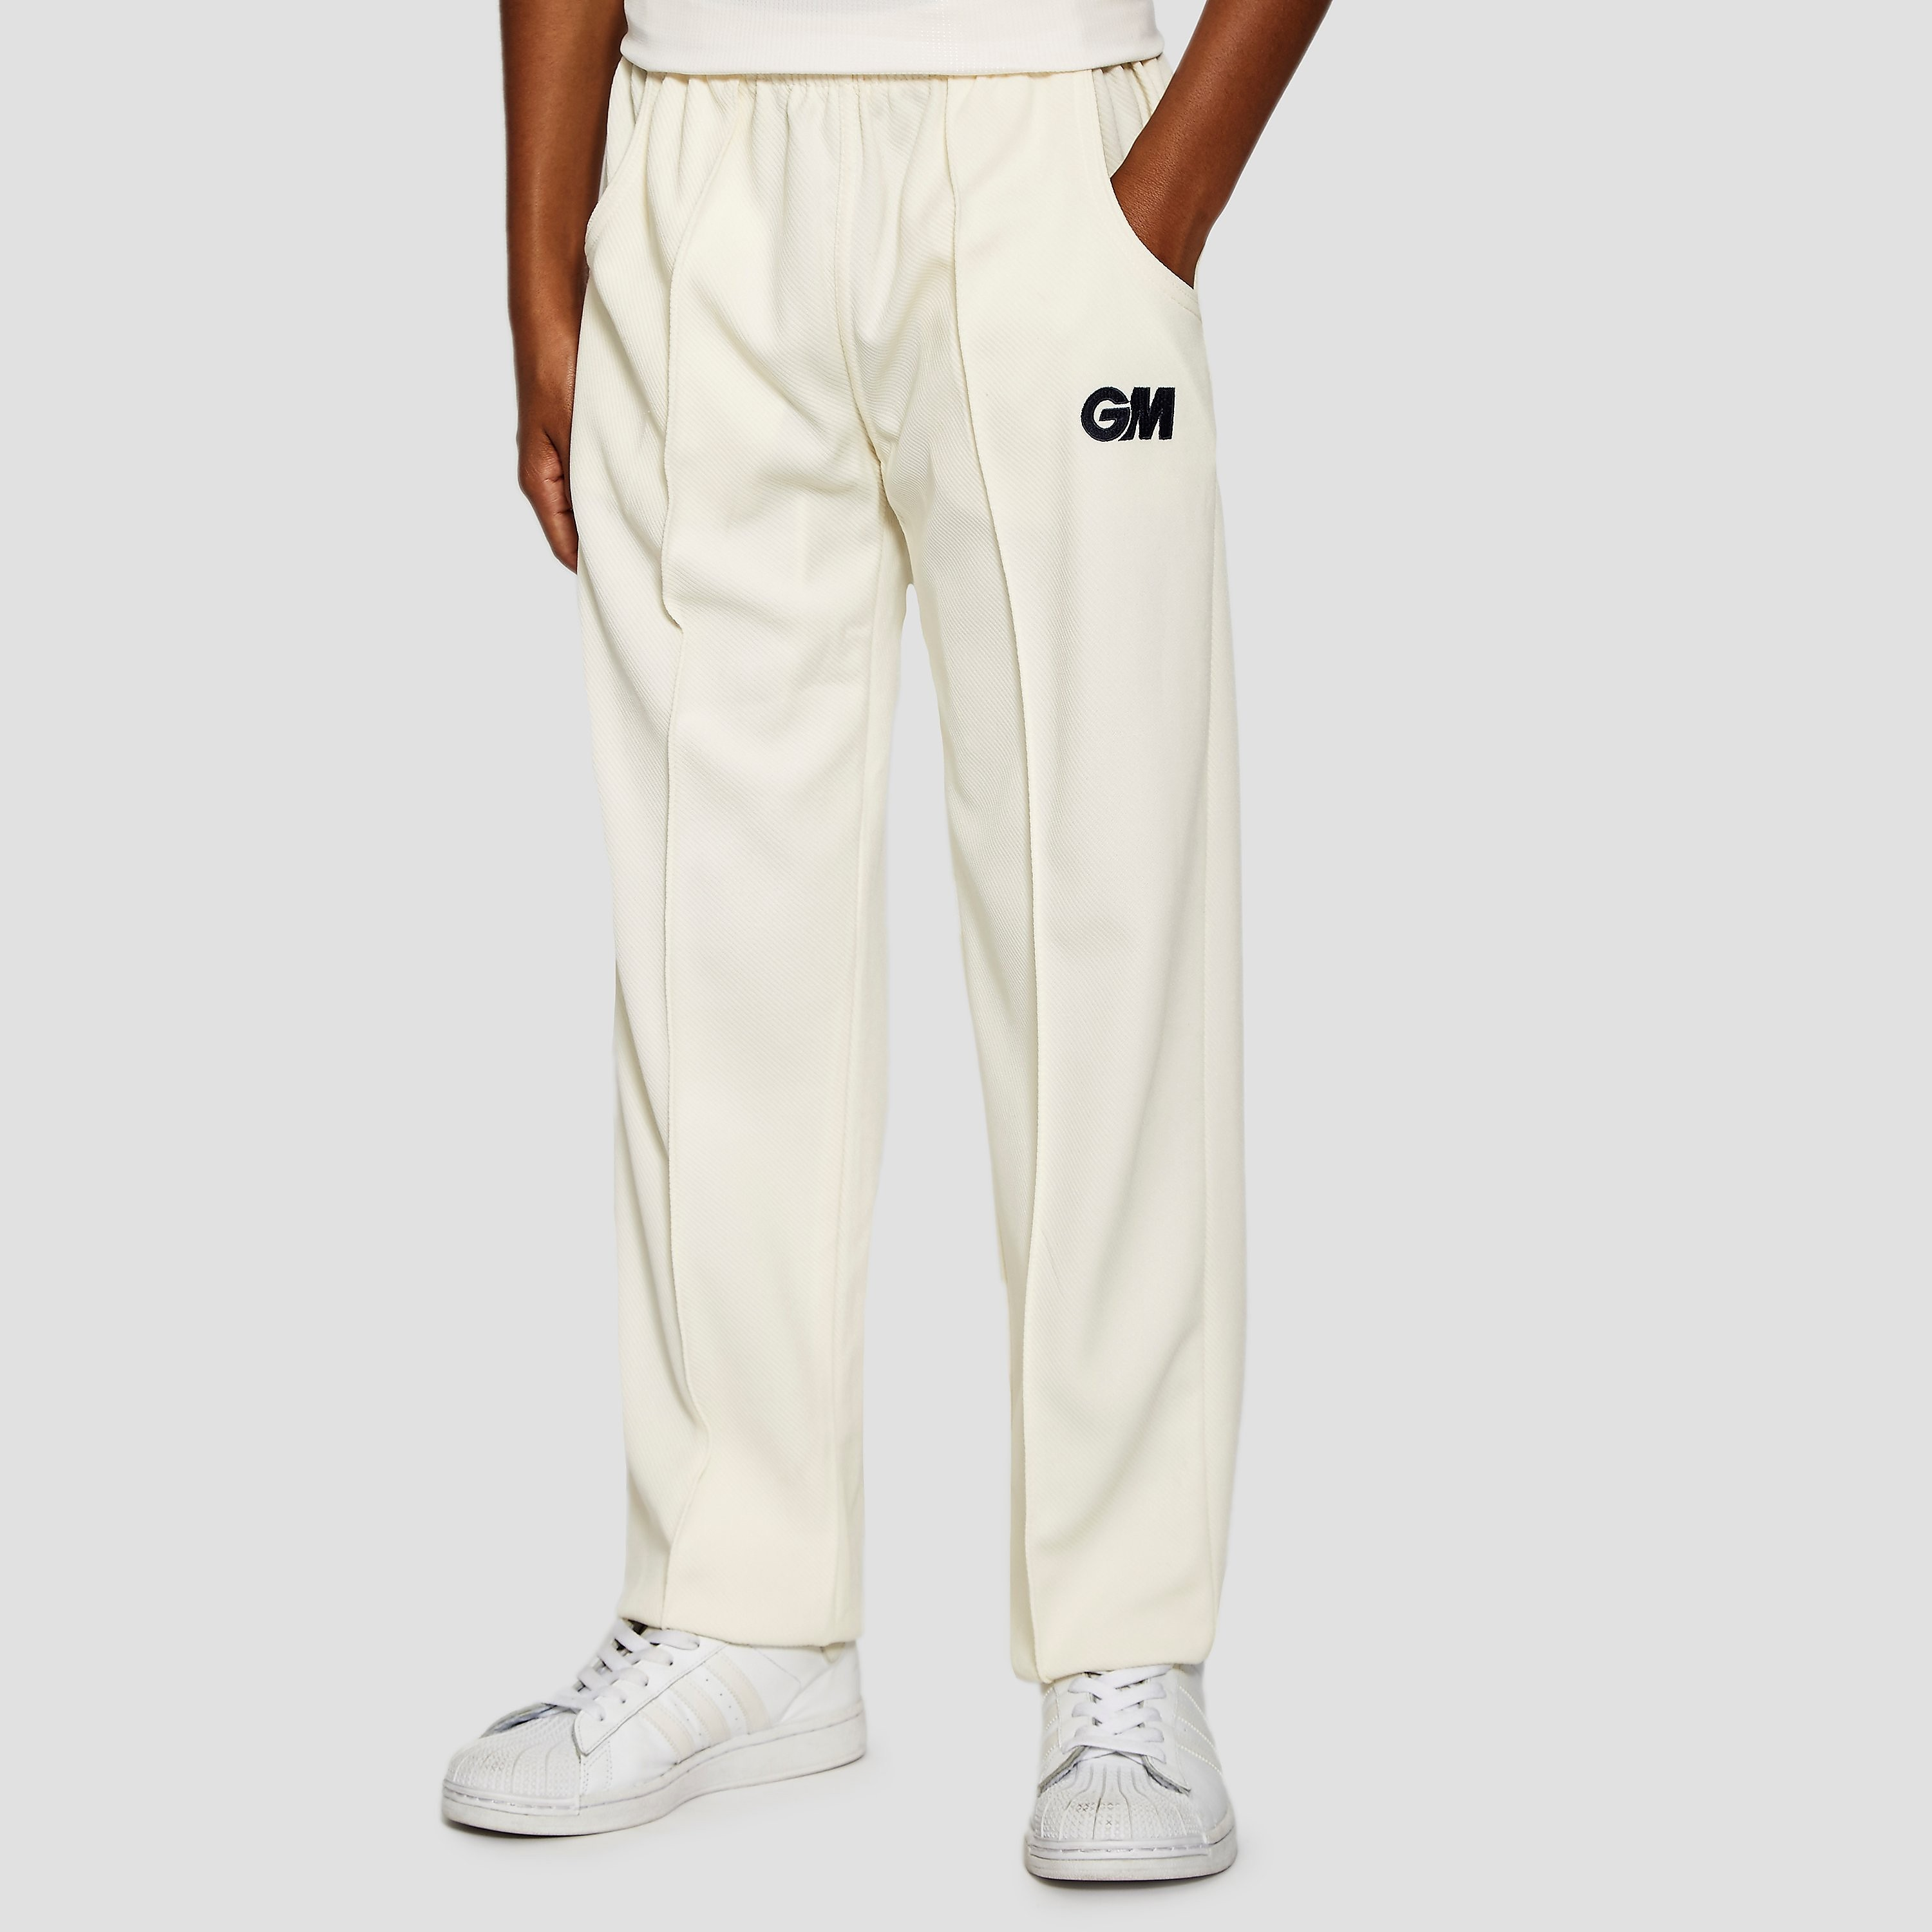 Gunn & Moore Junior Premier Cricket Trousers